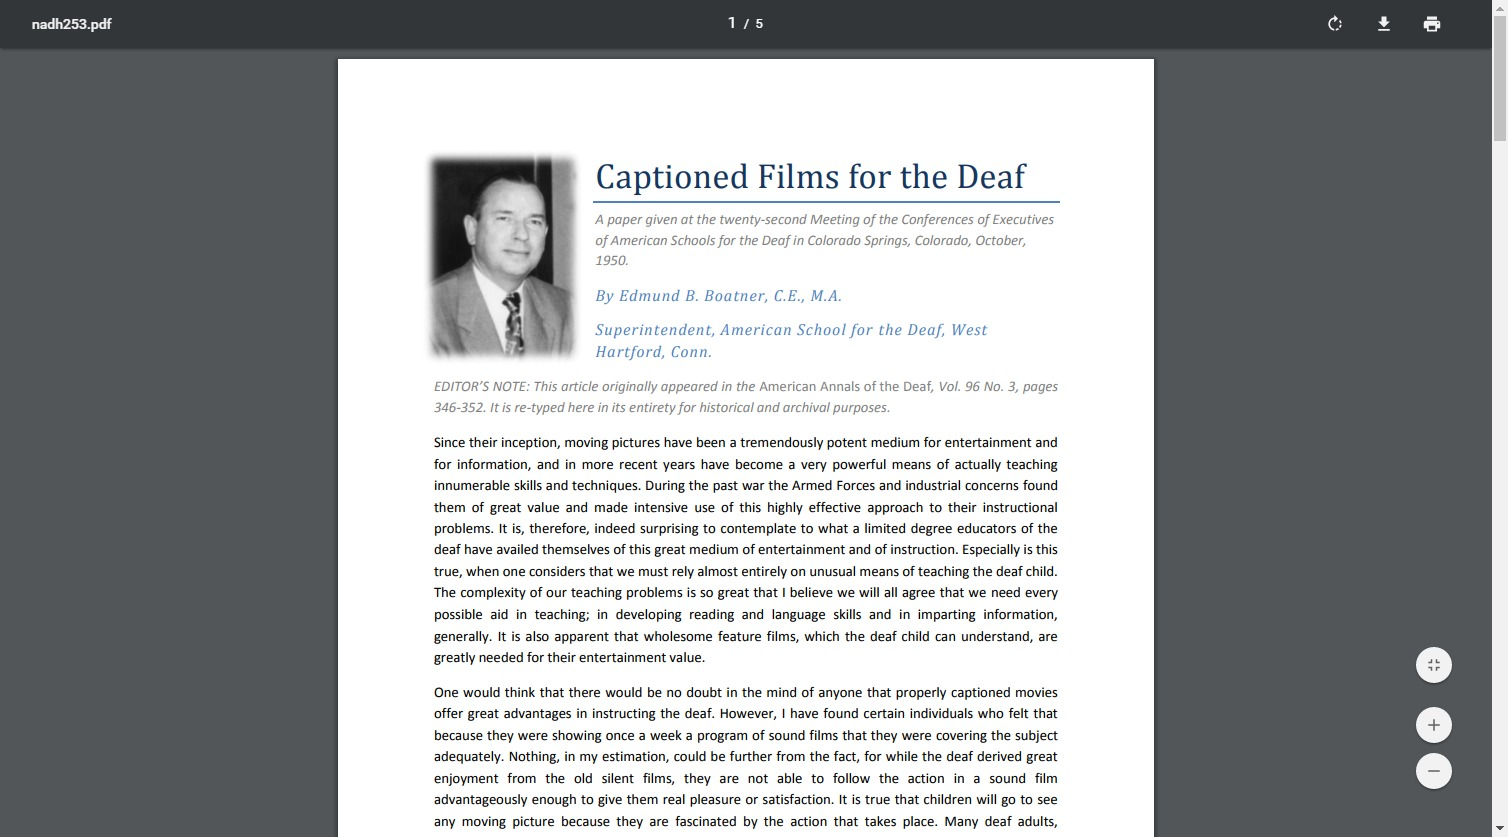 Captioned Films for the Deaf